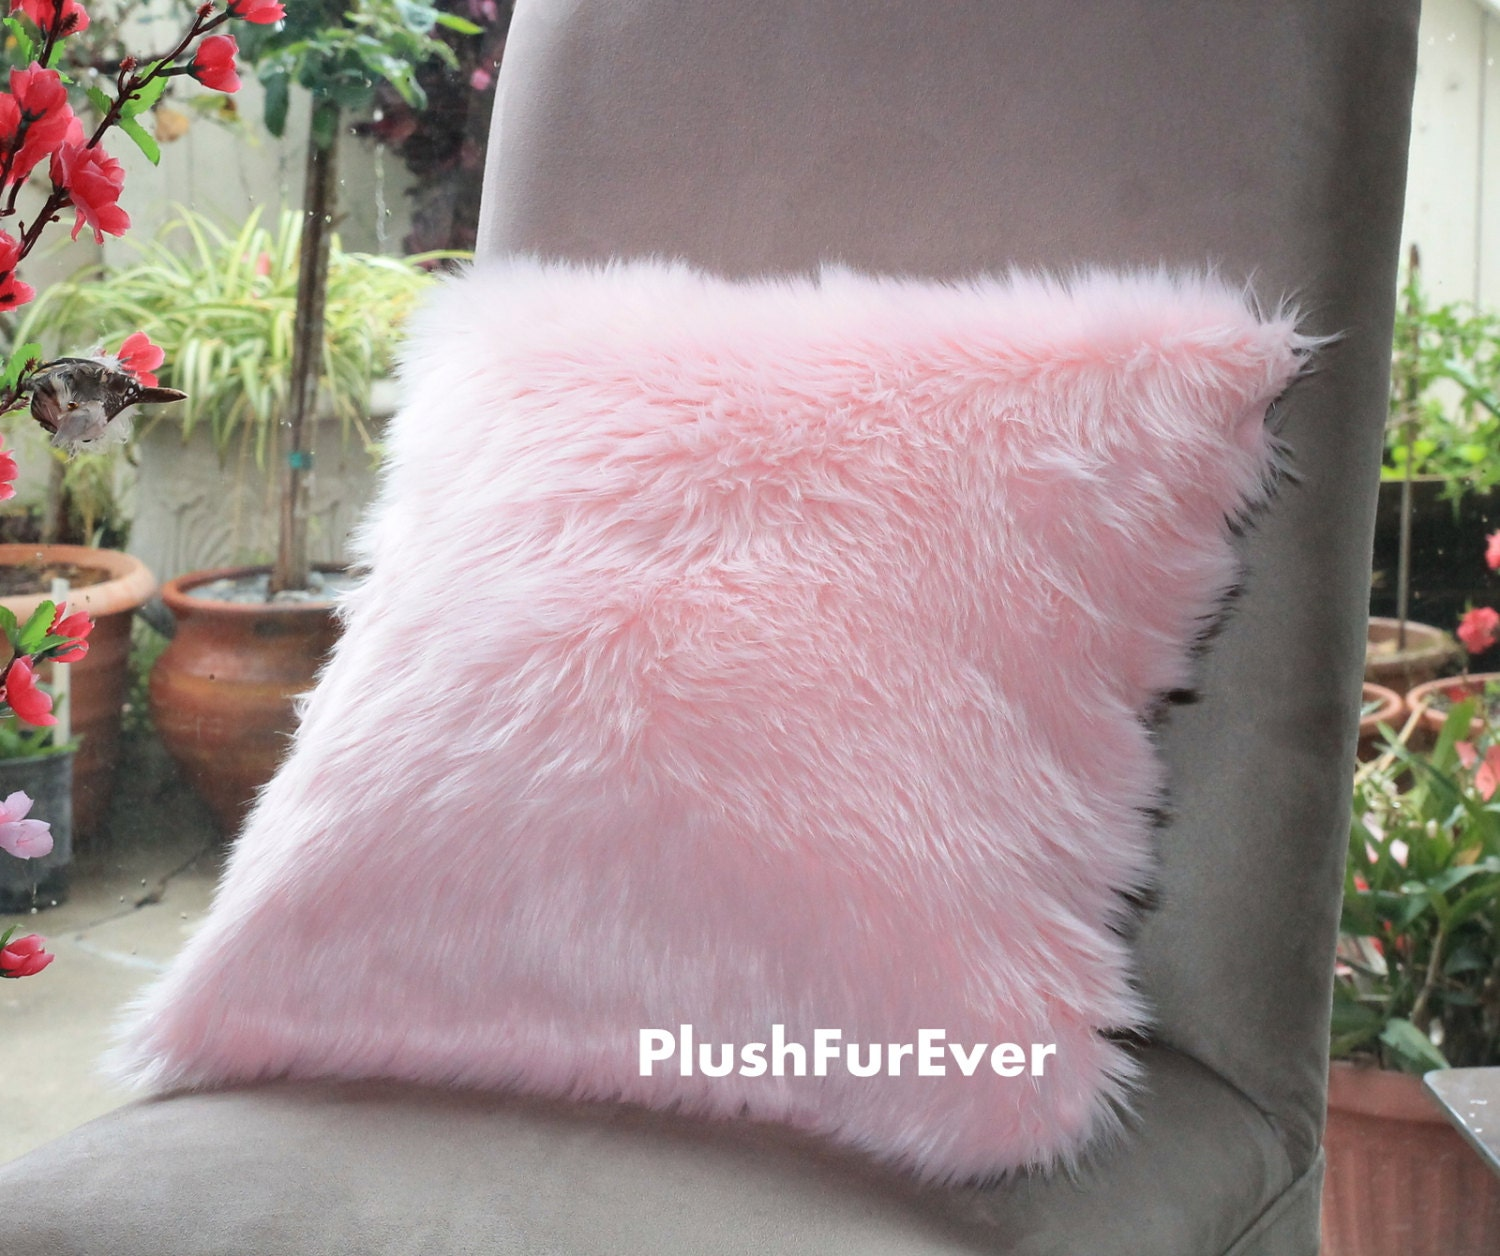 17x17 Pink Luxury Shaggy Fur Pillows Faux Fake Fur